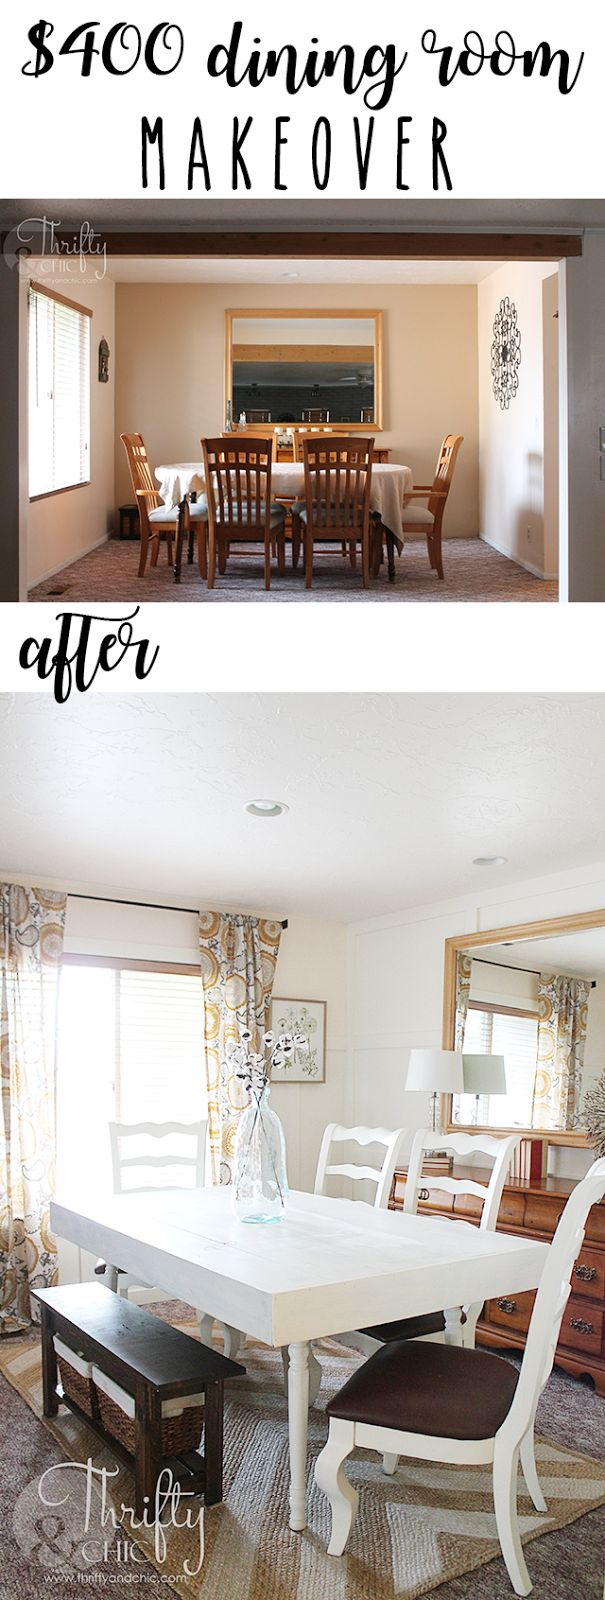 17 best images about best of thrifty and chic on pinterest mantels home decor and decorating. Black Bedroom Furniture Sets. Home Design Ideas